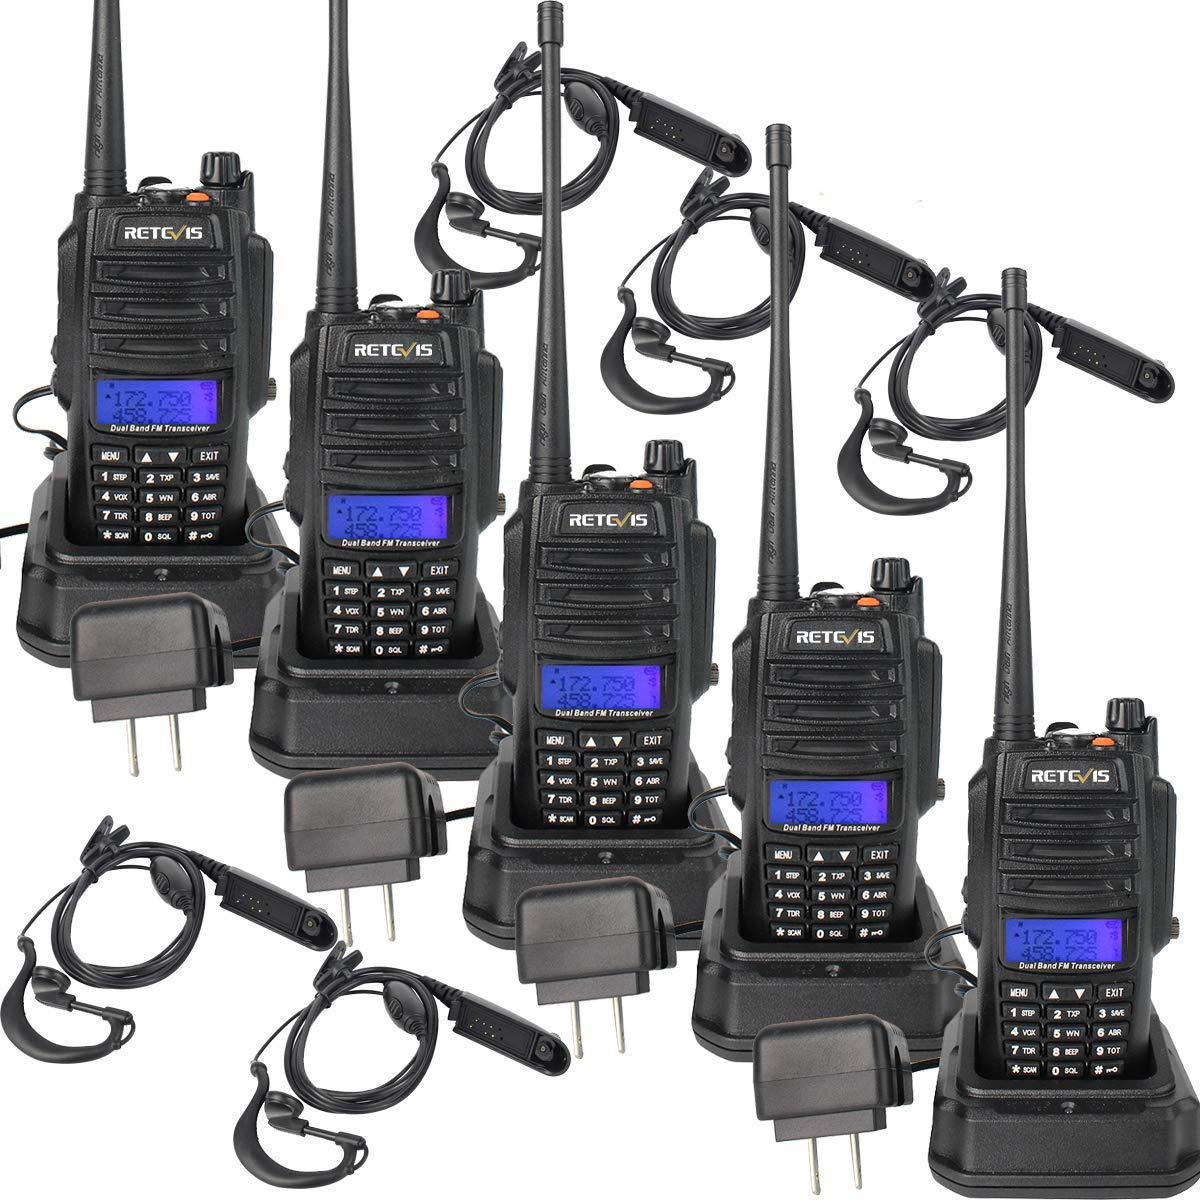 Retevis RT6 Two Way Radios Waterproof 128 CH 5W VHF UHF Dual Band